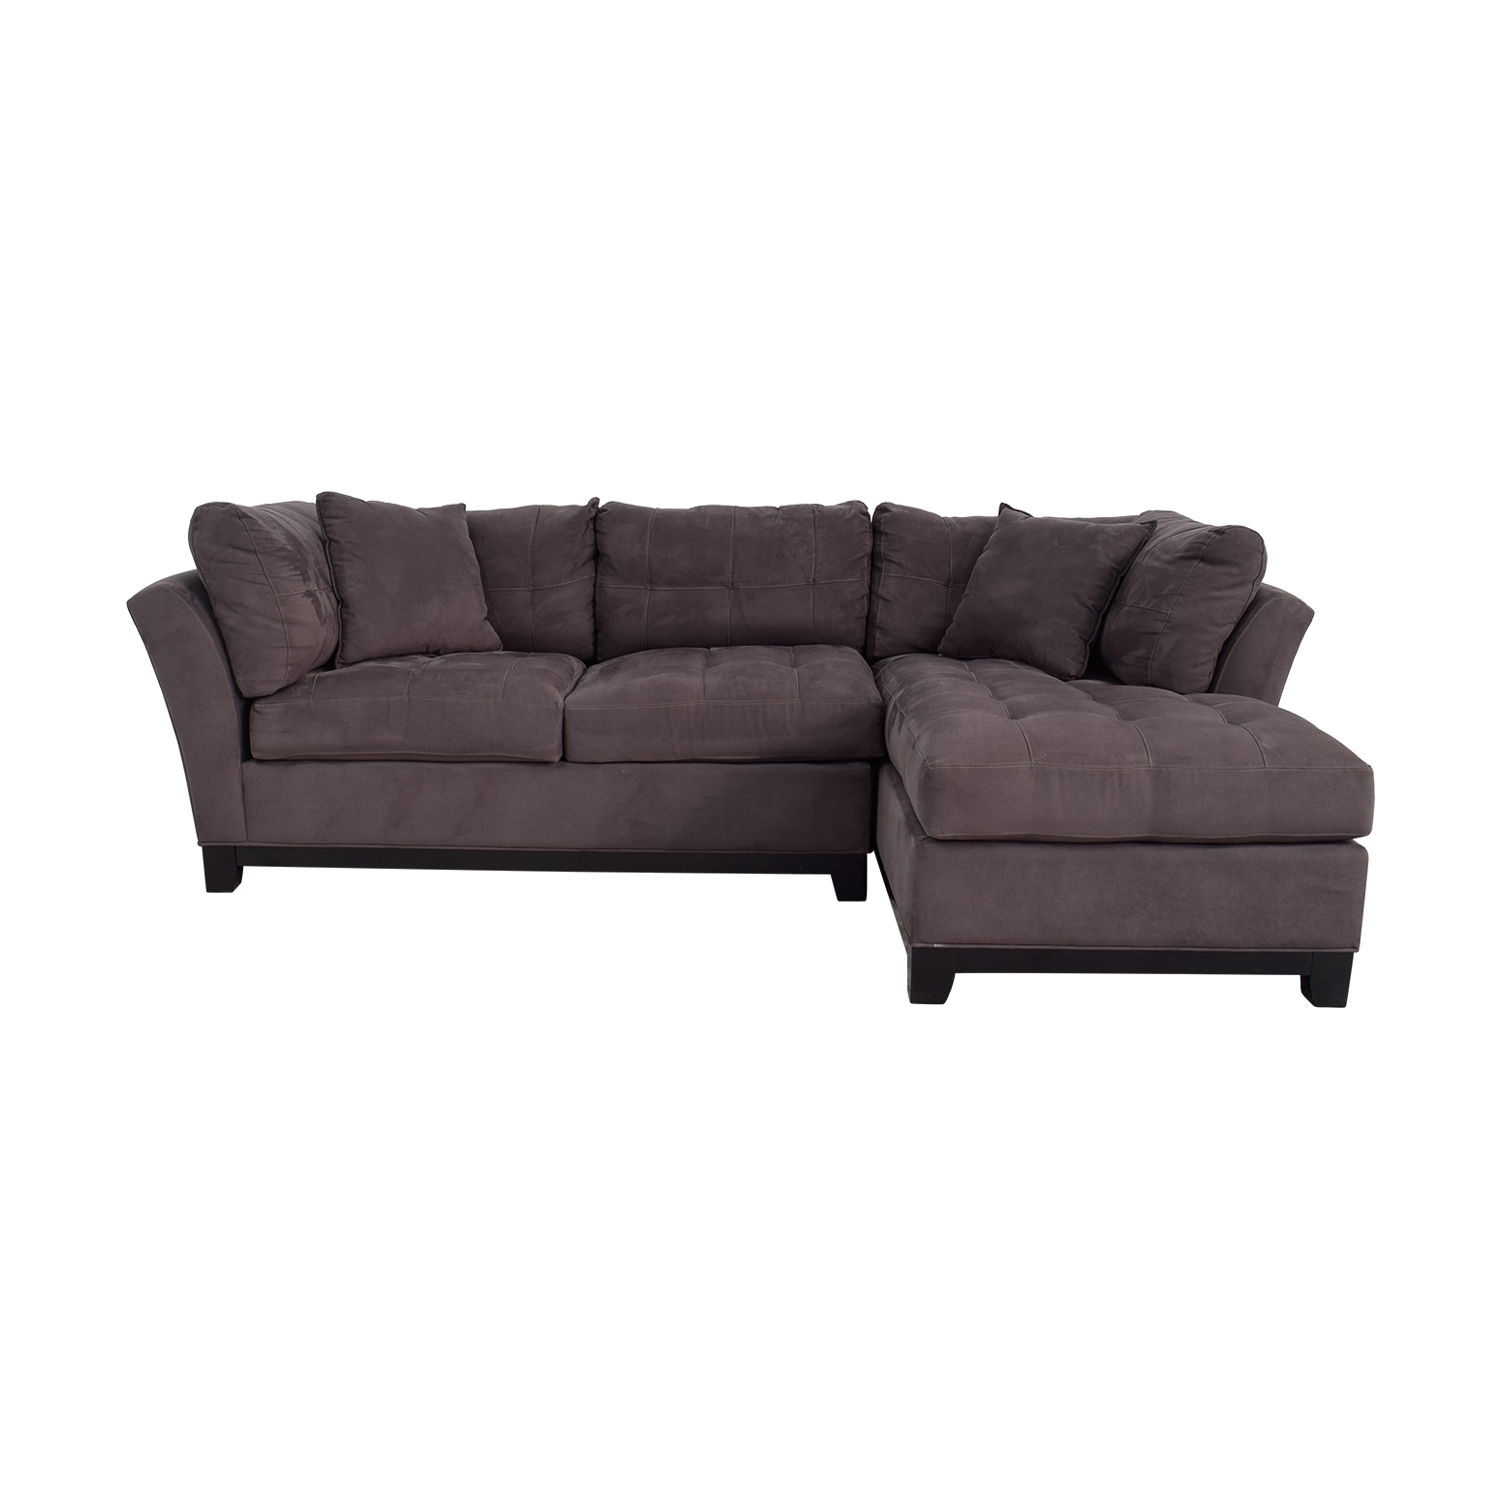 [%64% Off – Raymour & Flanigan Raymour & Flanigan Cindy Crawford Within Well Known Sectional Sofas At Raymour And Flanigan|sectional Sofas At Raymour And Flanigan For Preferred 64% Off – Raymour & Flanigan Raymour & Flanigan Cindy Crawford|widely Used Sectional Sofas At Raymour And Flanigan With 64% Off – Raymour & Flanigan Raymour & Flanigan Cindy Crawford|recent 64% Off – Raymour & Flanigan Raymour & Flanigan Cindy Crawford Inside Sectional Sofas At Raymour And Flanigan%] (View 10 of 20)